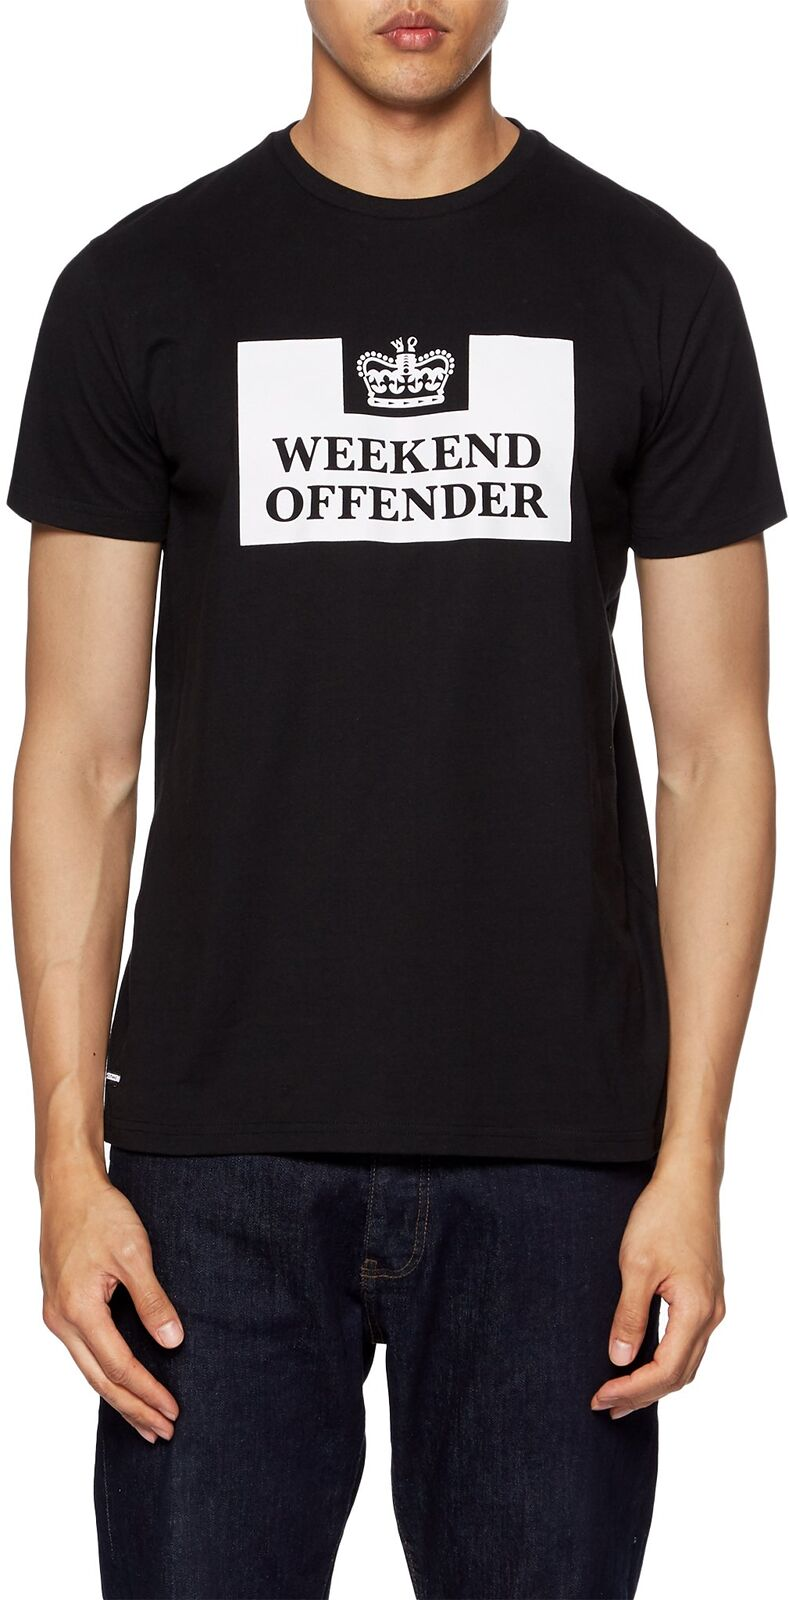 Weekend Offender Prison Classic T-Shirt Black